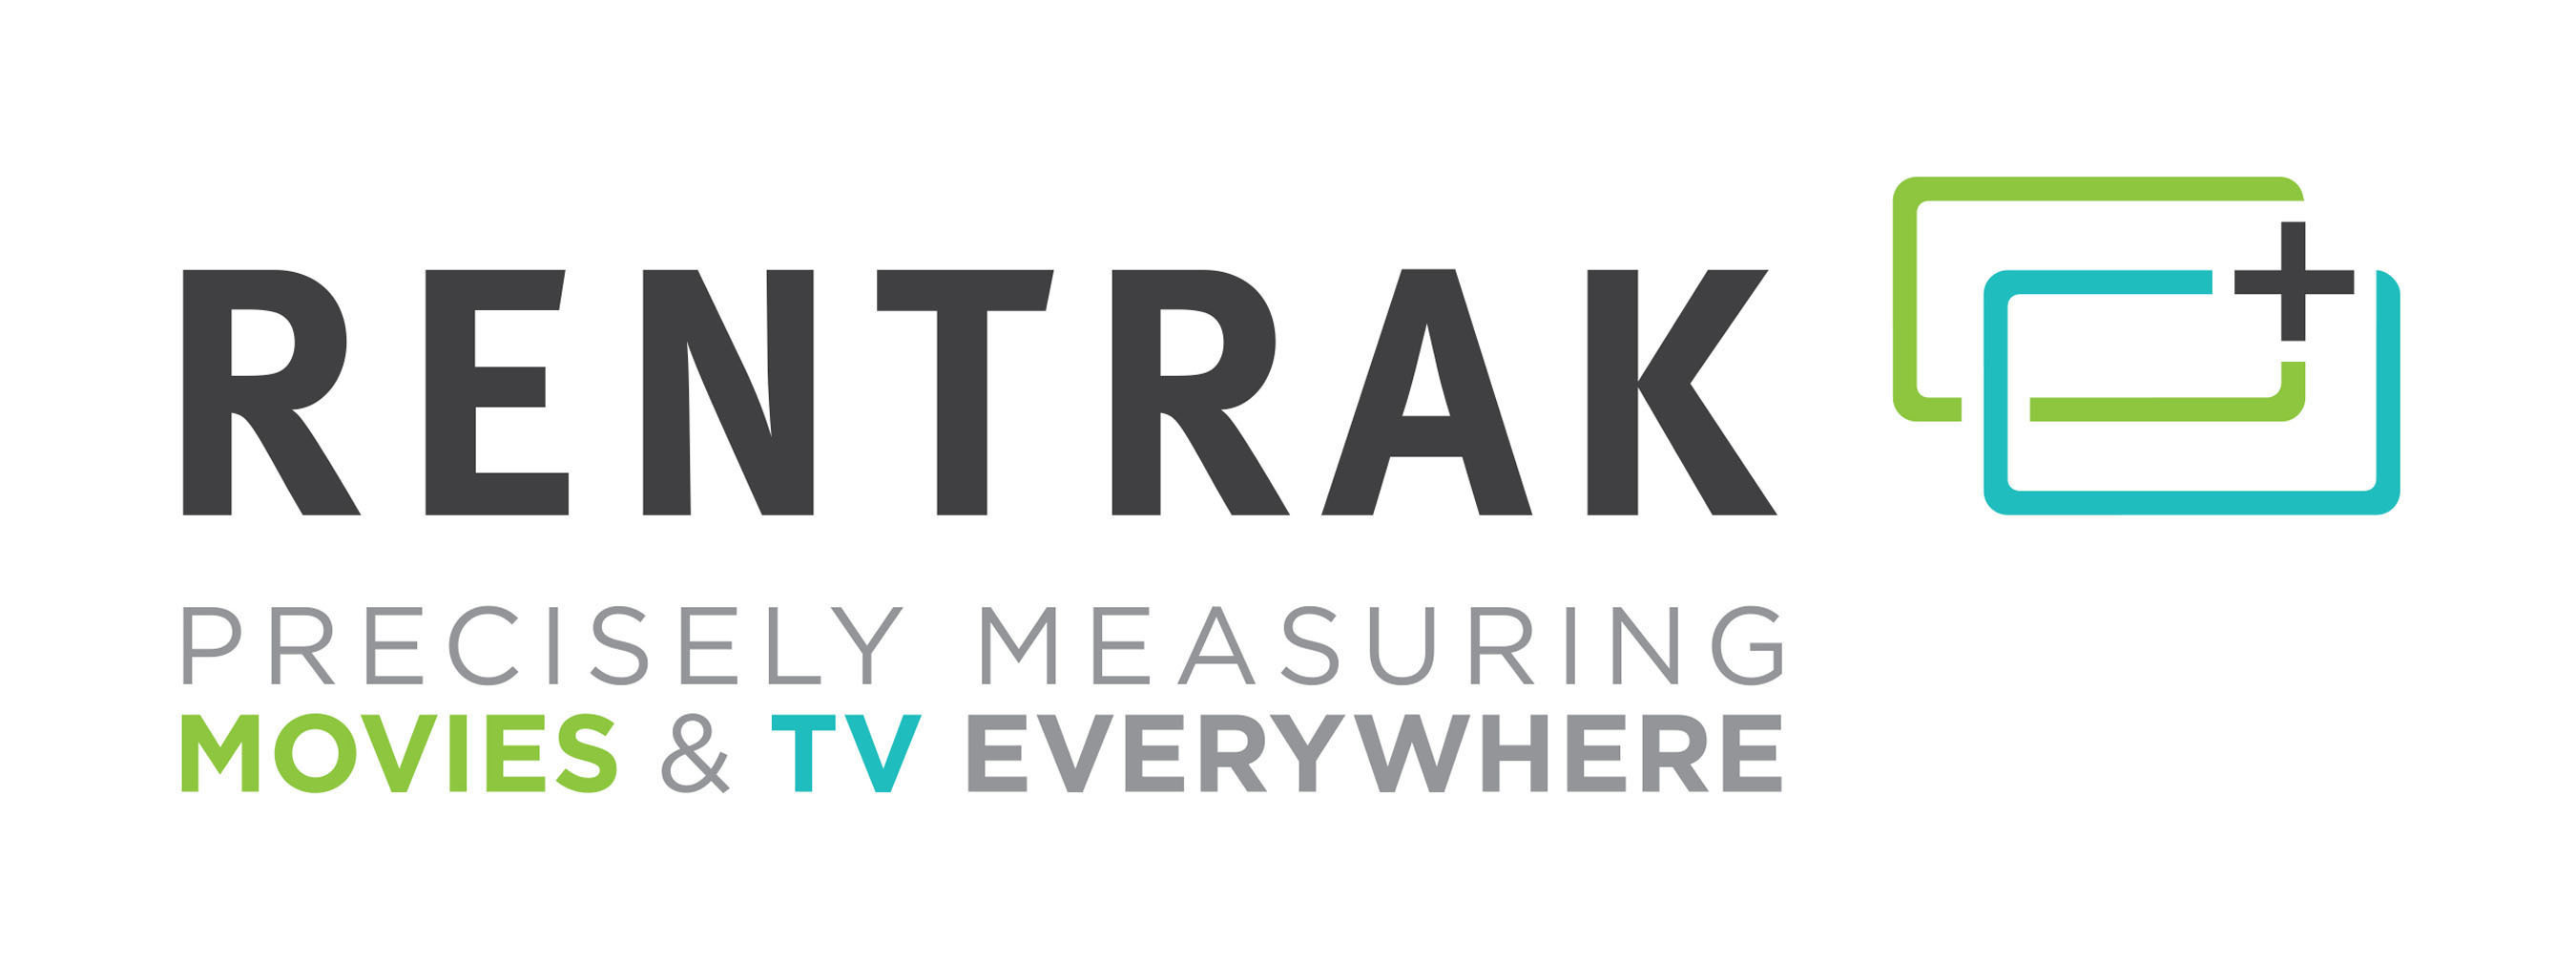 Rentrak Announces Official Worldwide Box Office Results for Weekend of August 24, 2014